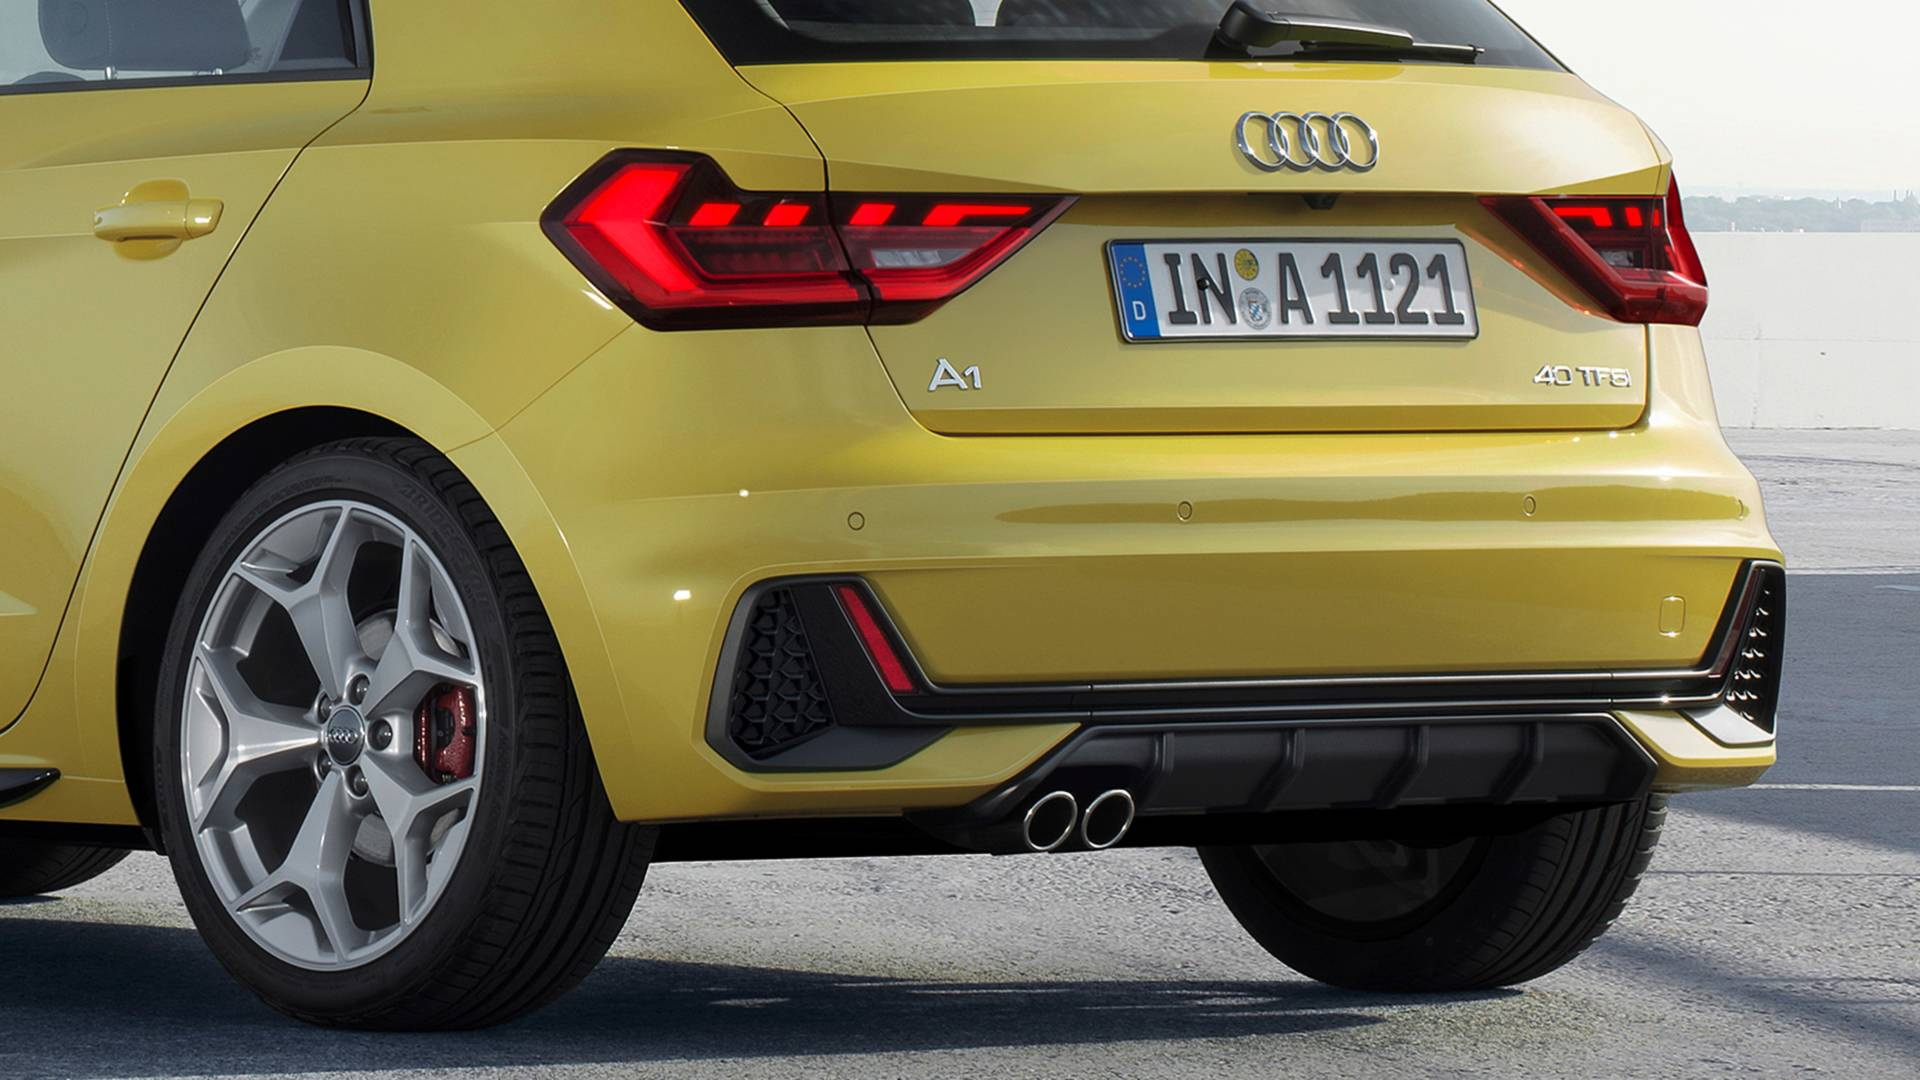 2019 audi a1 sportback revealed 40 tfsi boasts 2 0 liter engine with 200 ps autoevolution. Black Bedroom Furniture Sets. Home Design Ideas